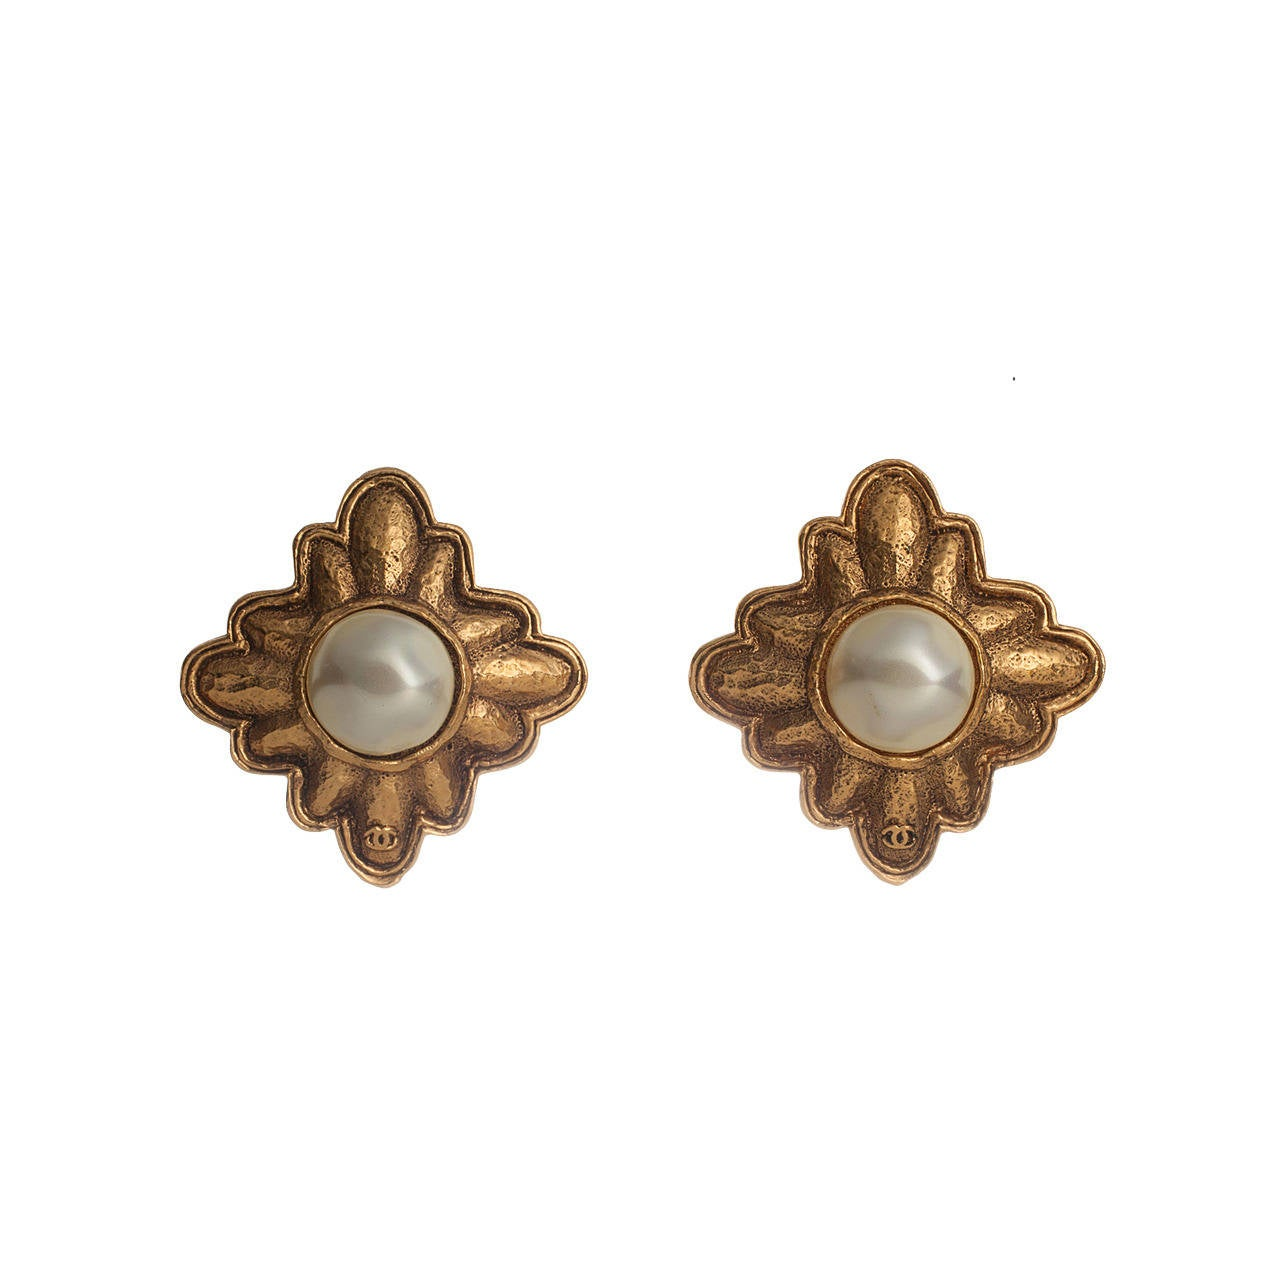 vintage chanel earrings with gripoix pearls for sale at